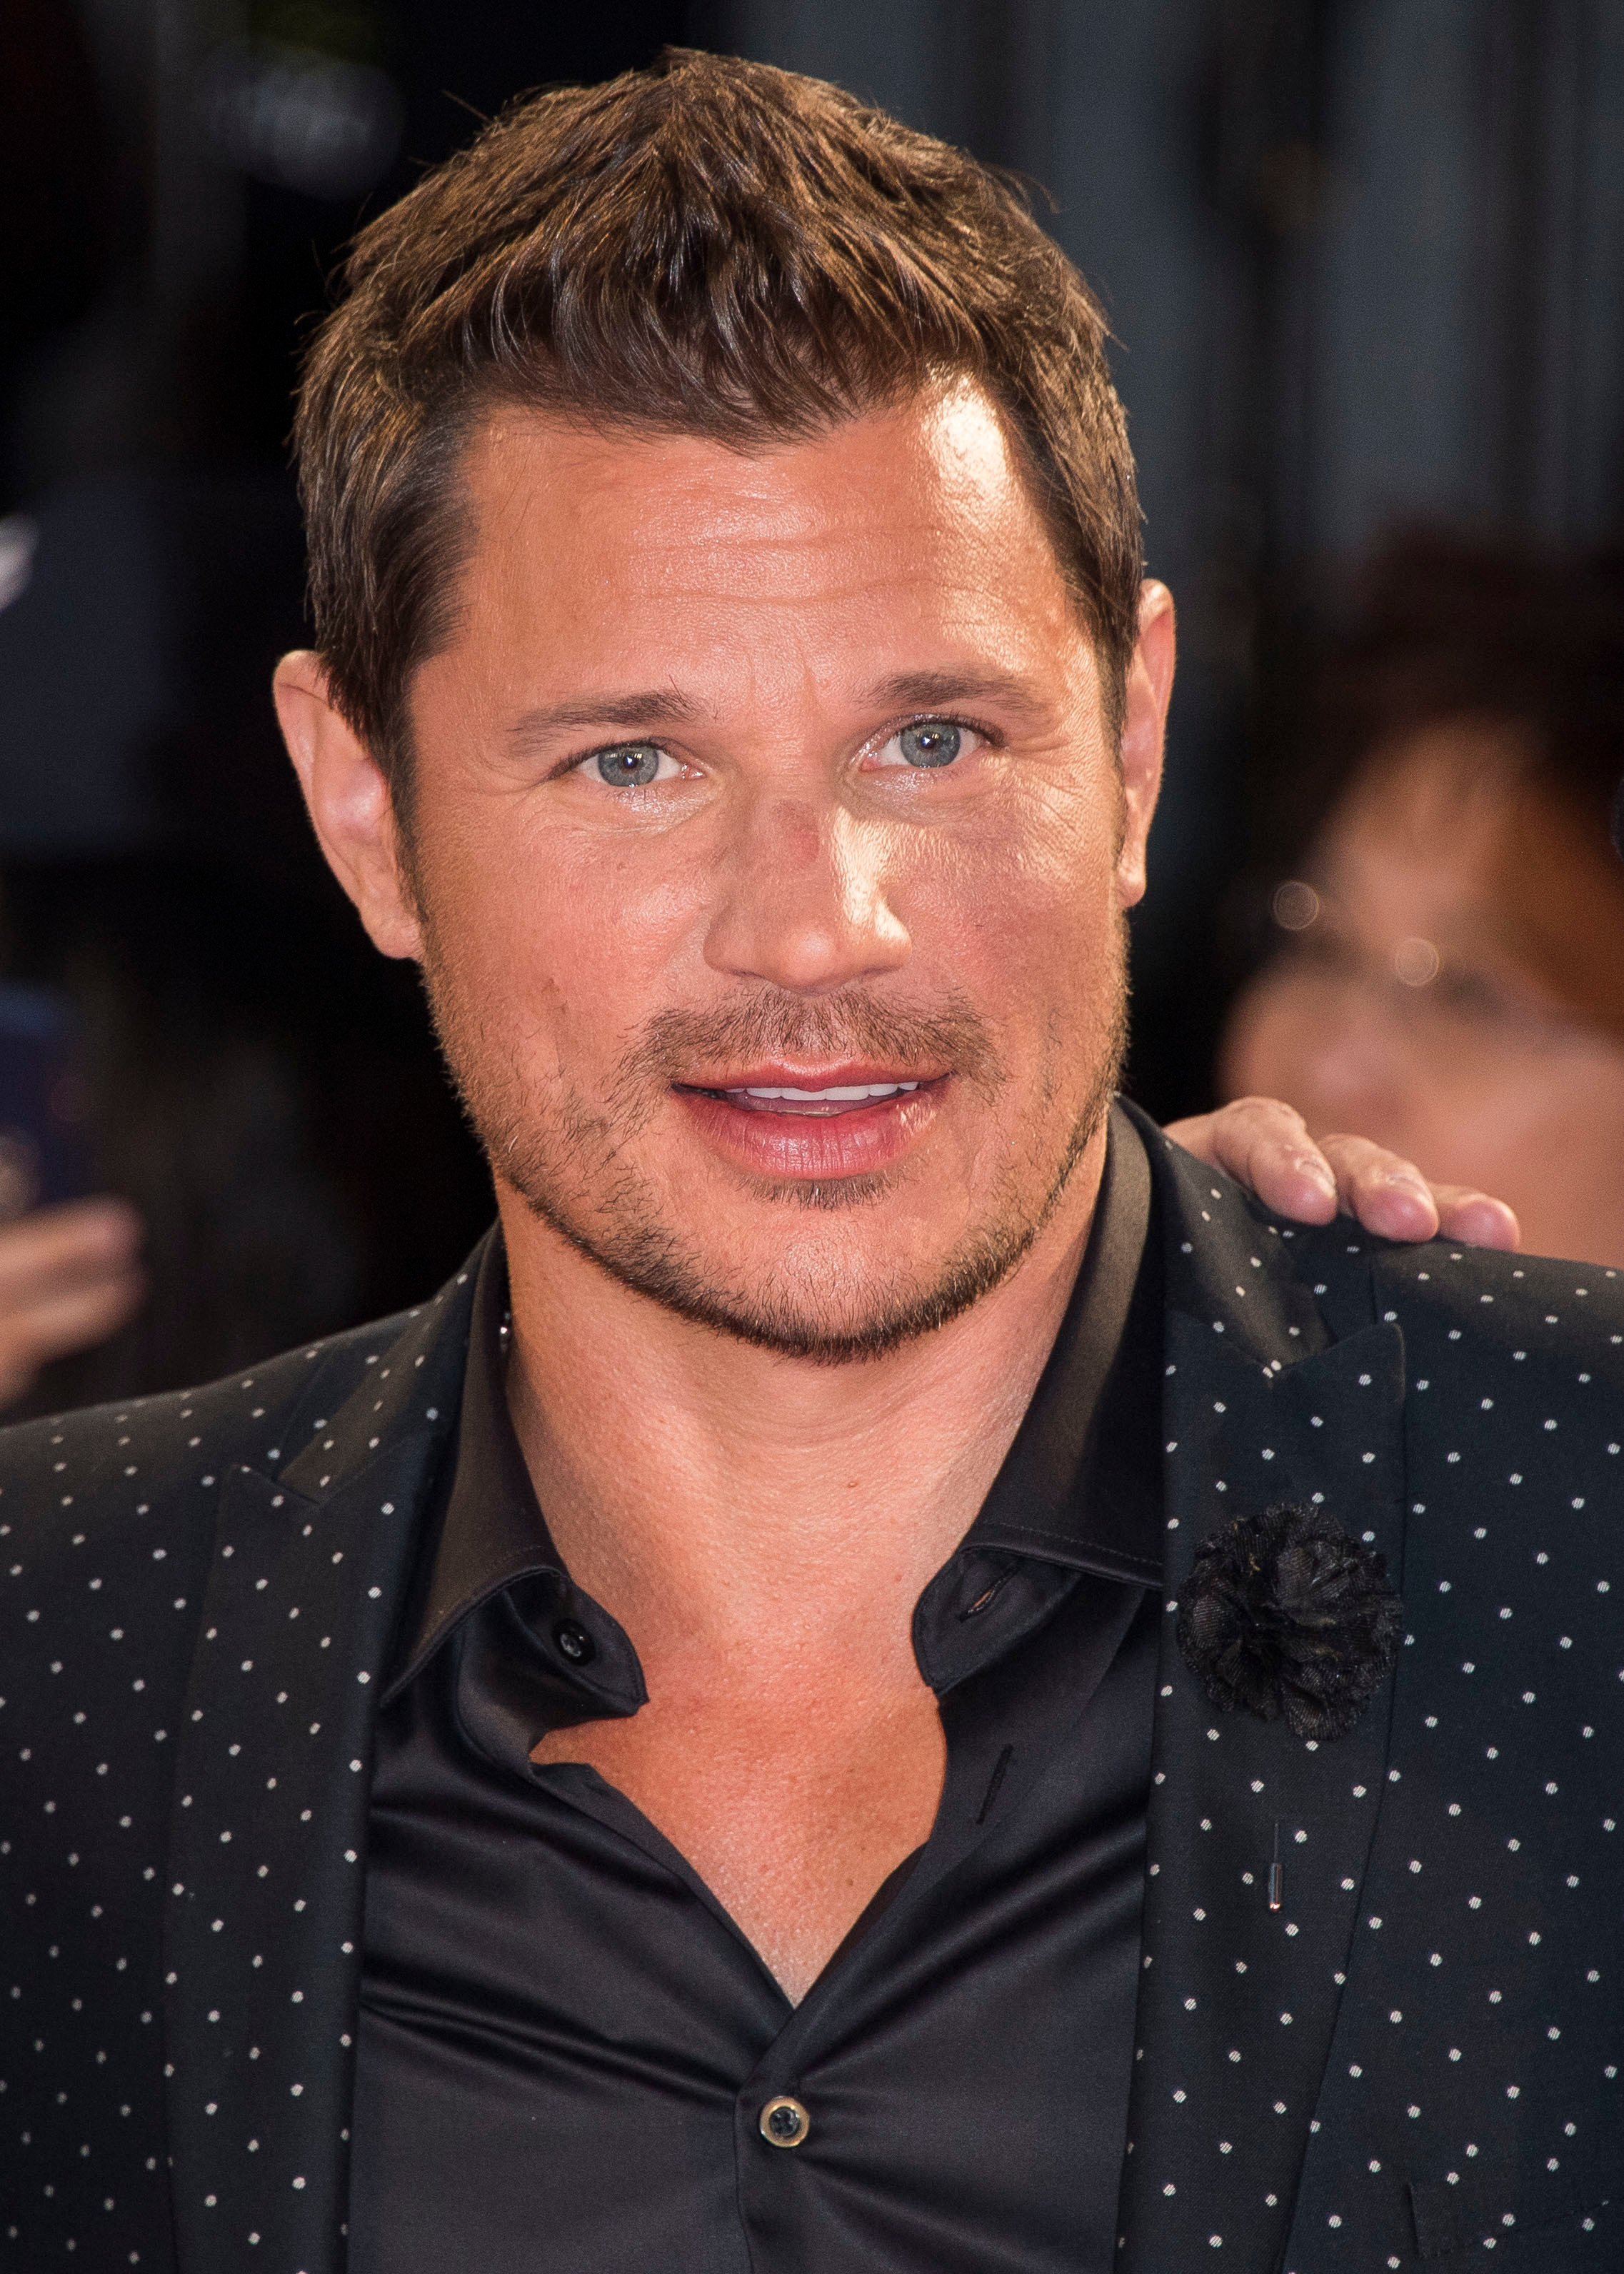 Nick Lachey arrives at the 2018 iHeartRadio MuchMusic Video Awards in Toronto on Aug. 26, 2018.